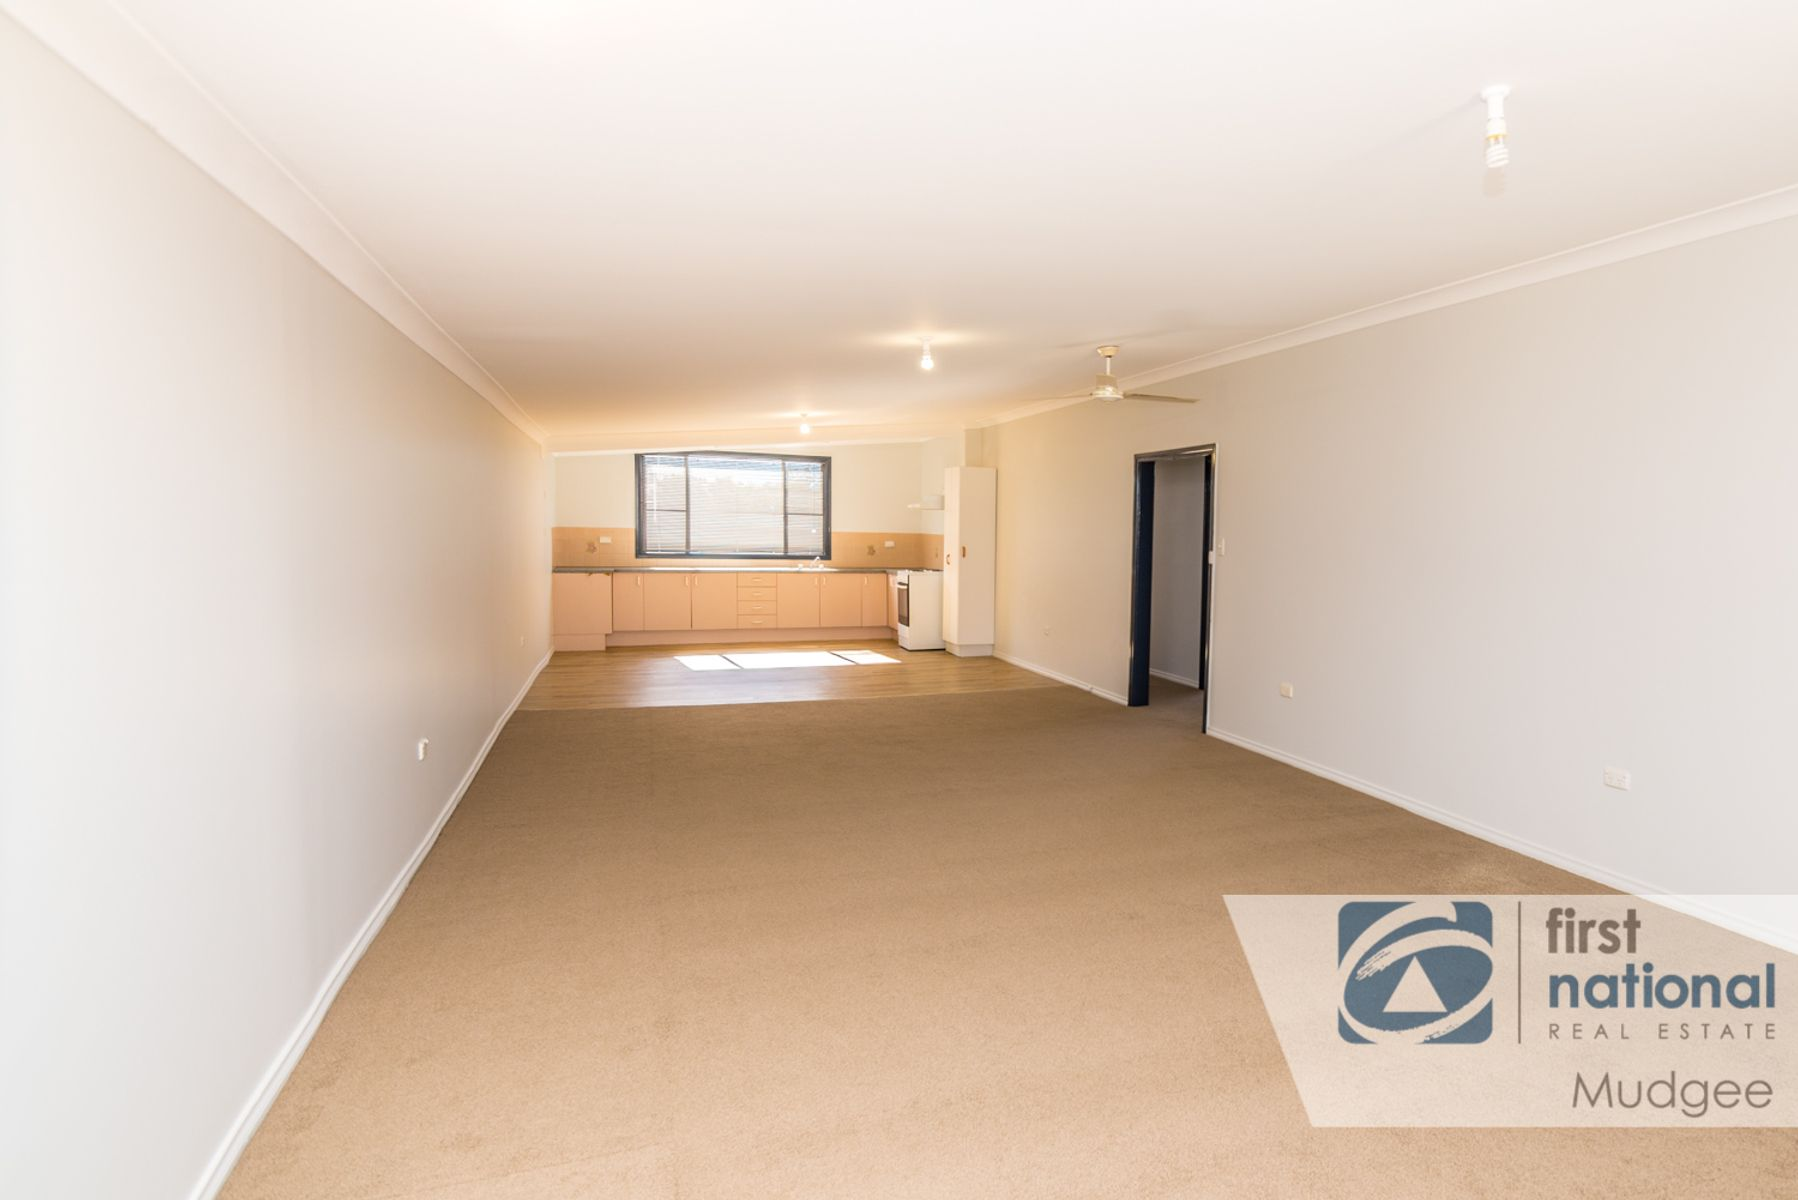 1/26 Sydney Road, Mudgee, NSW 2850